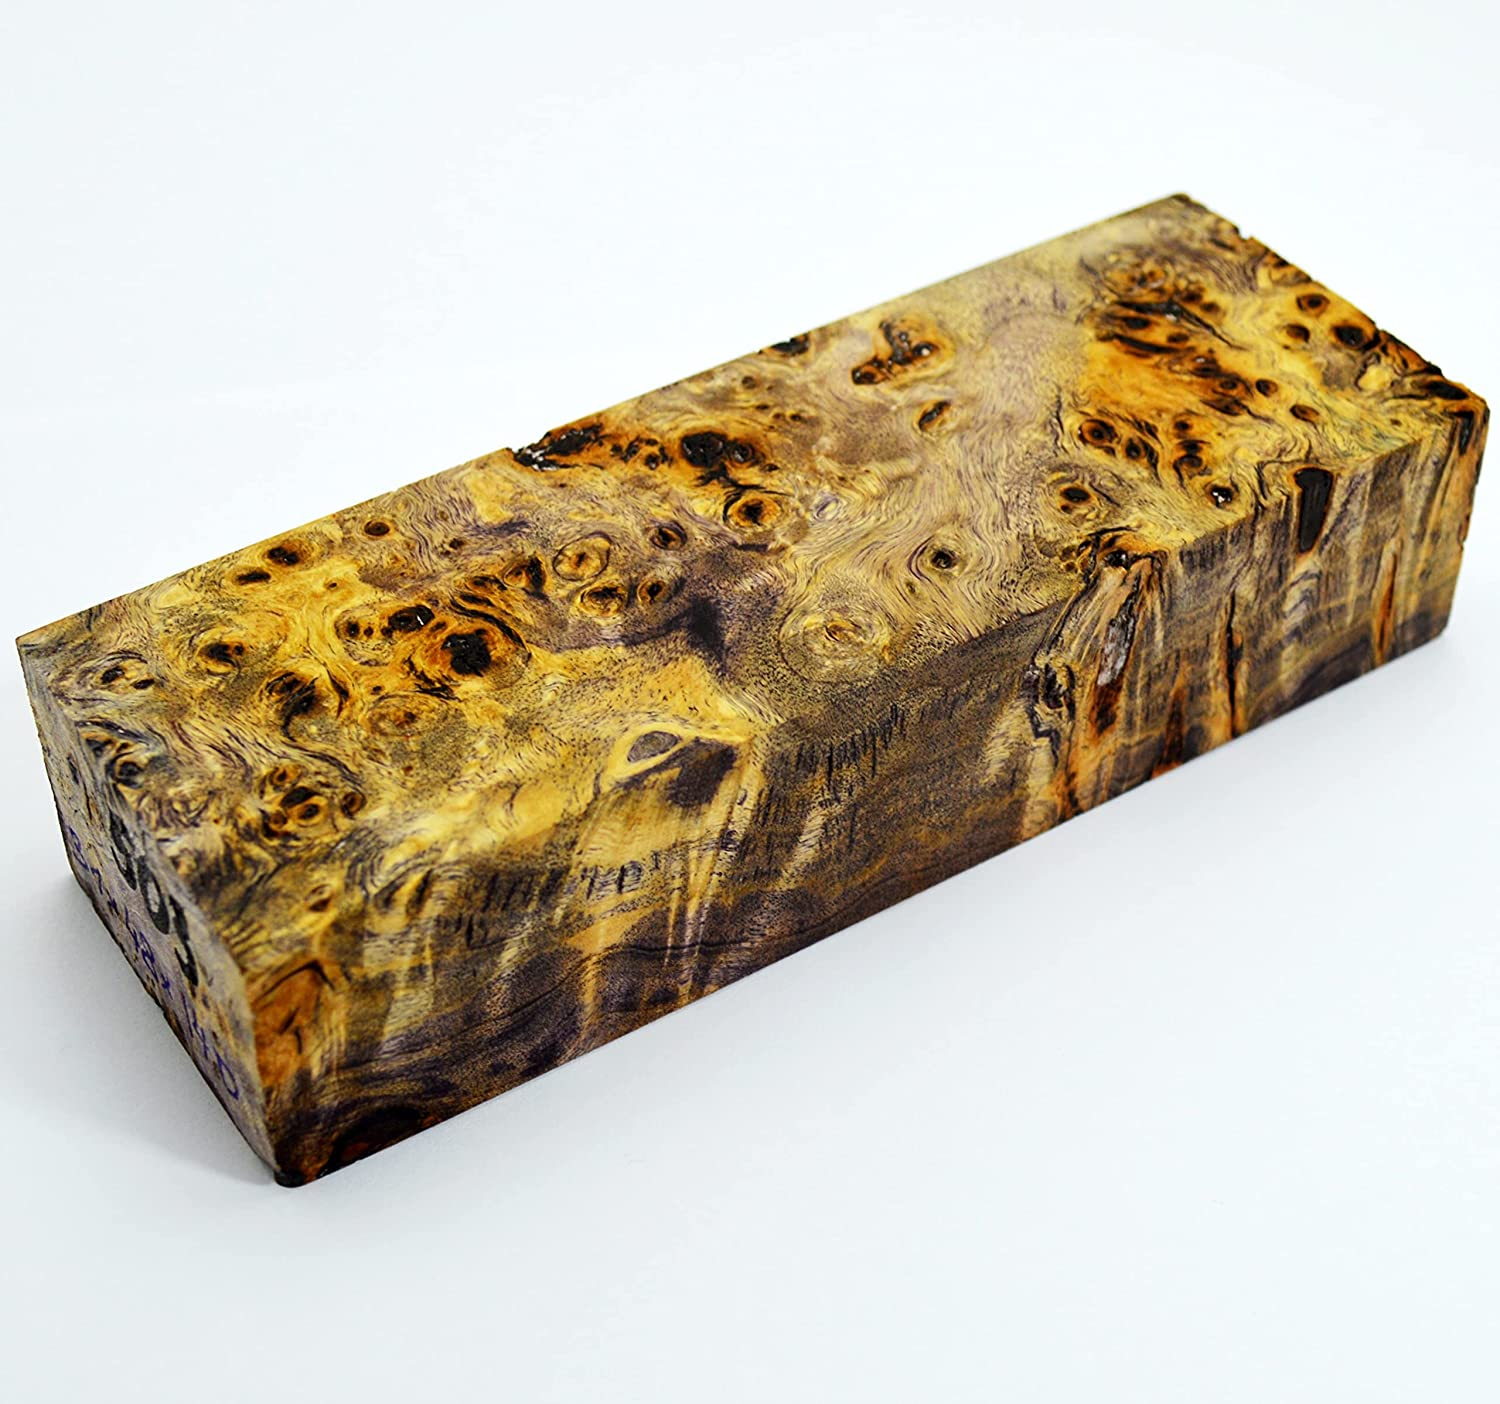 Stabilized BURL Max 46% OFF Wood Wooden Block Turning New sales Blank Handle Blade Kni